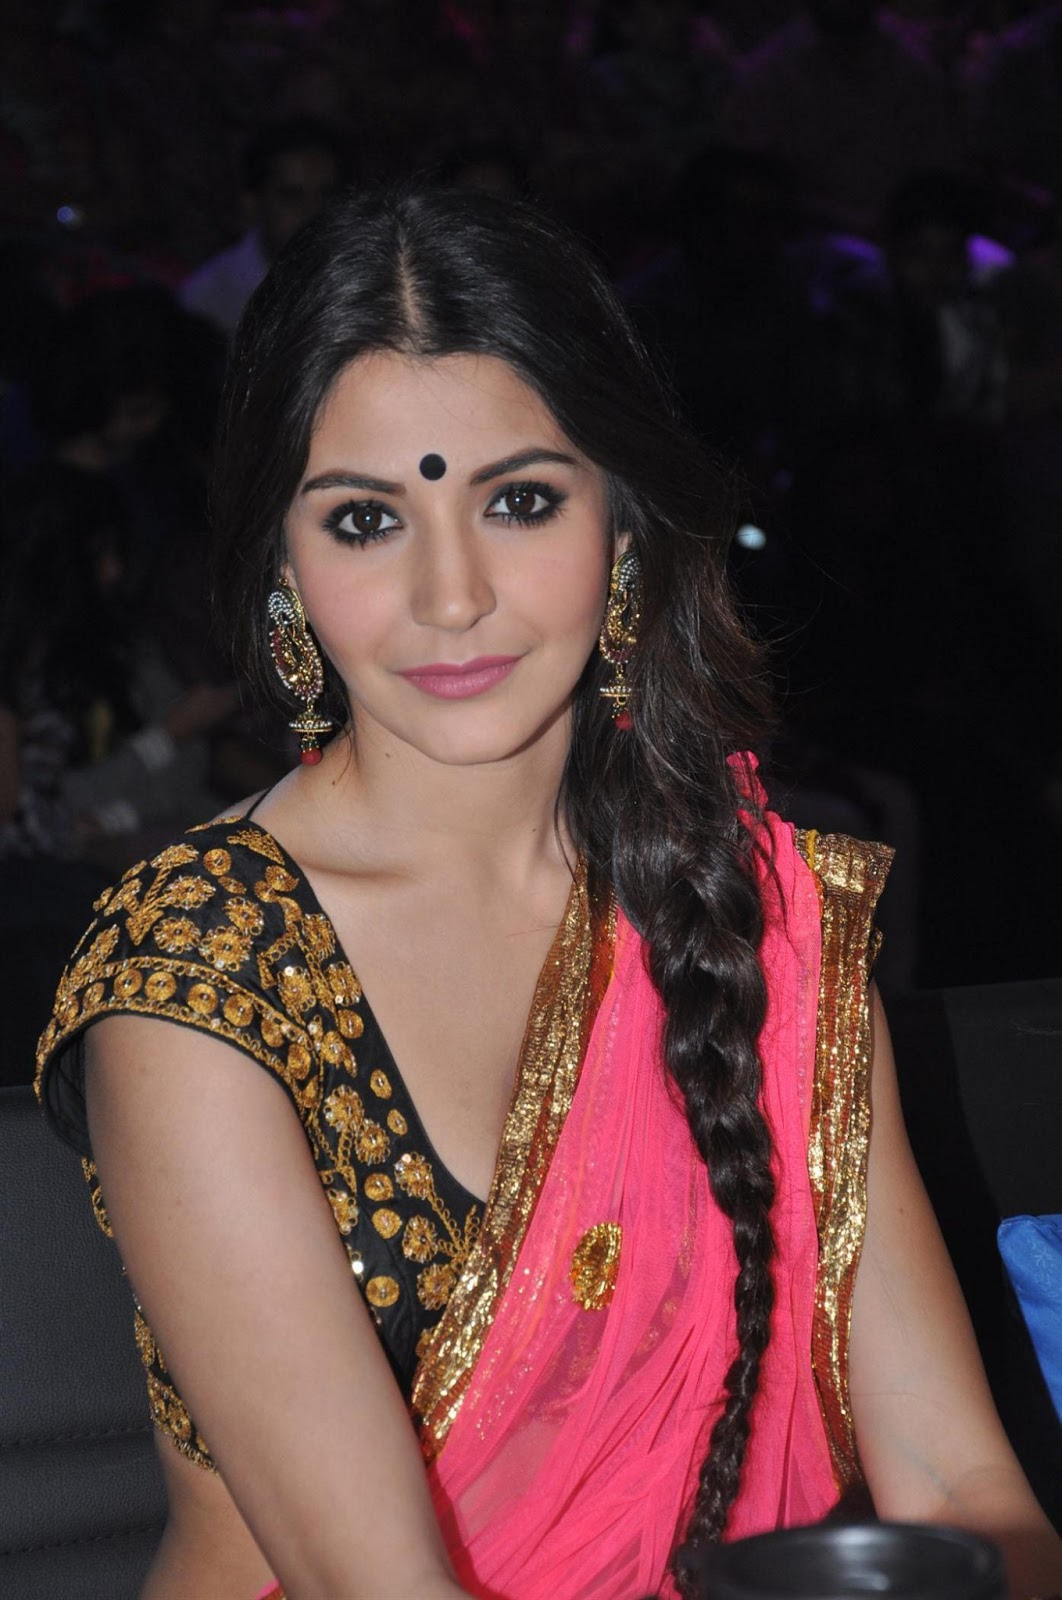 Anushka Sharma in Pink Saree.